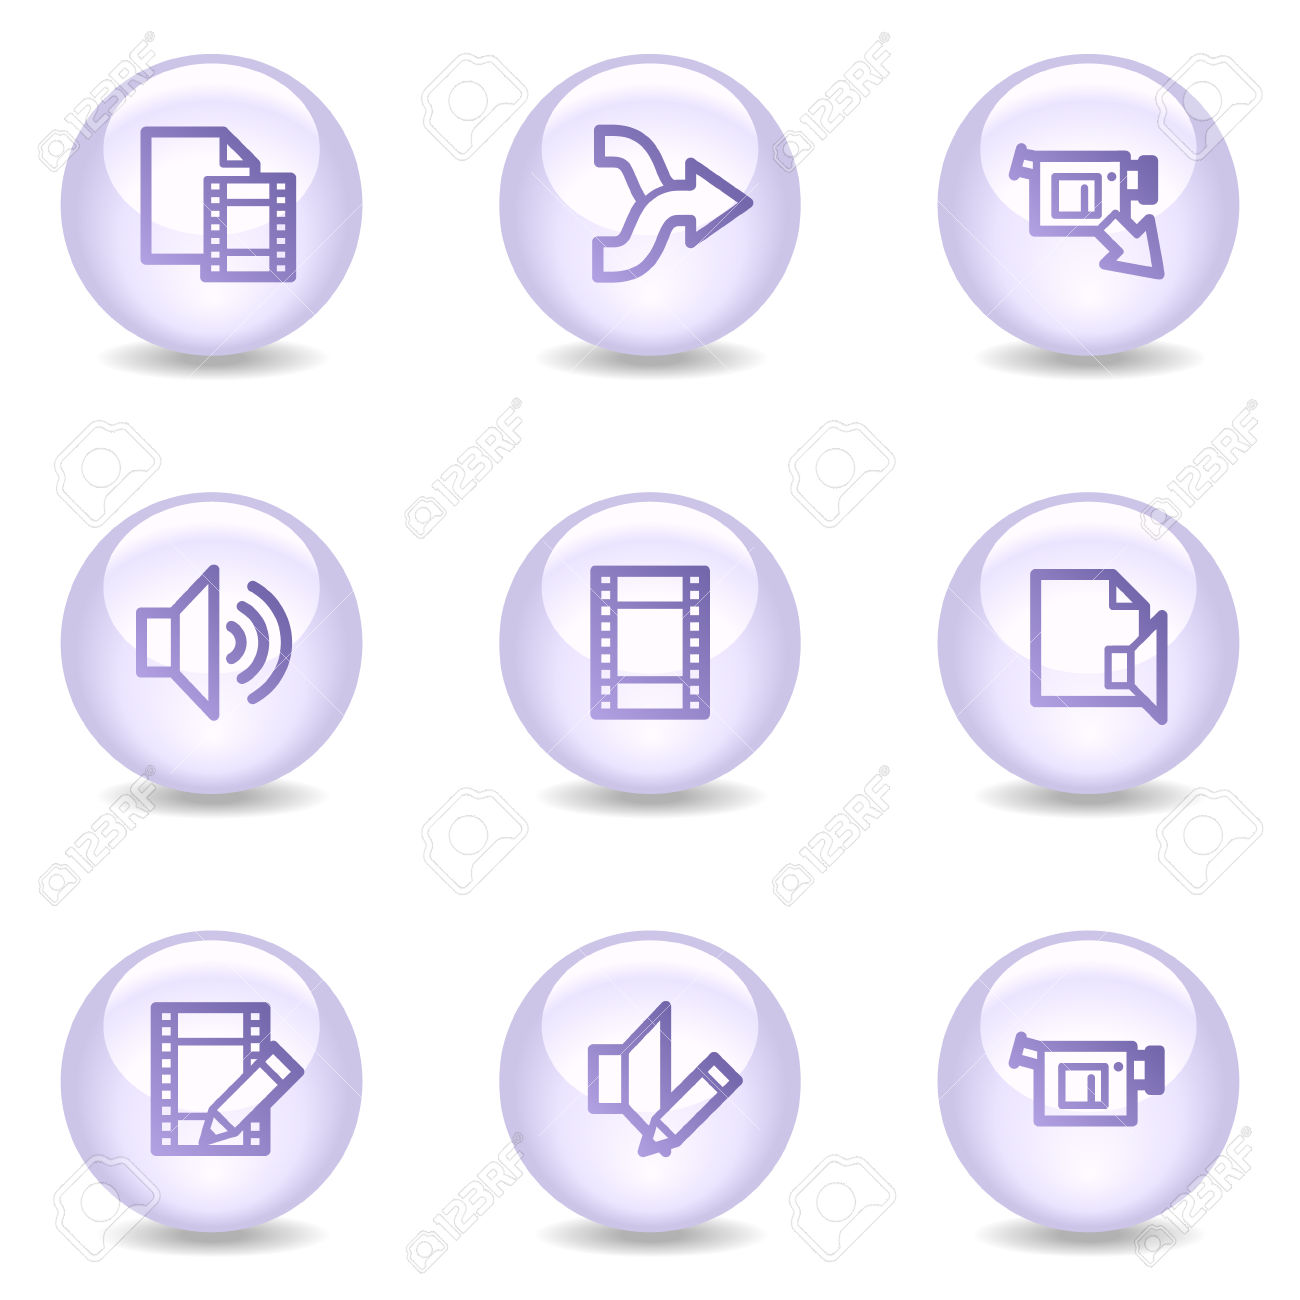 Audio And Video Editing Web Icons, Glossy Pearl Series Royalty.